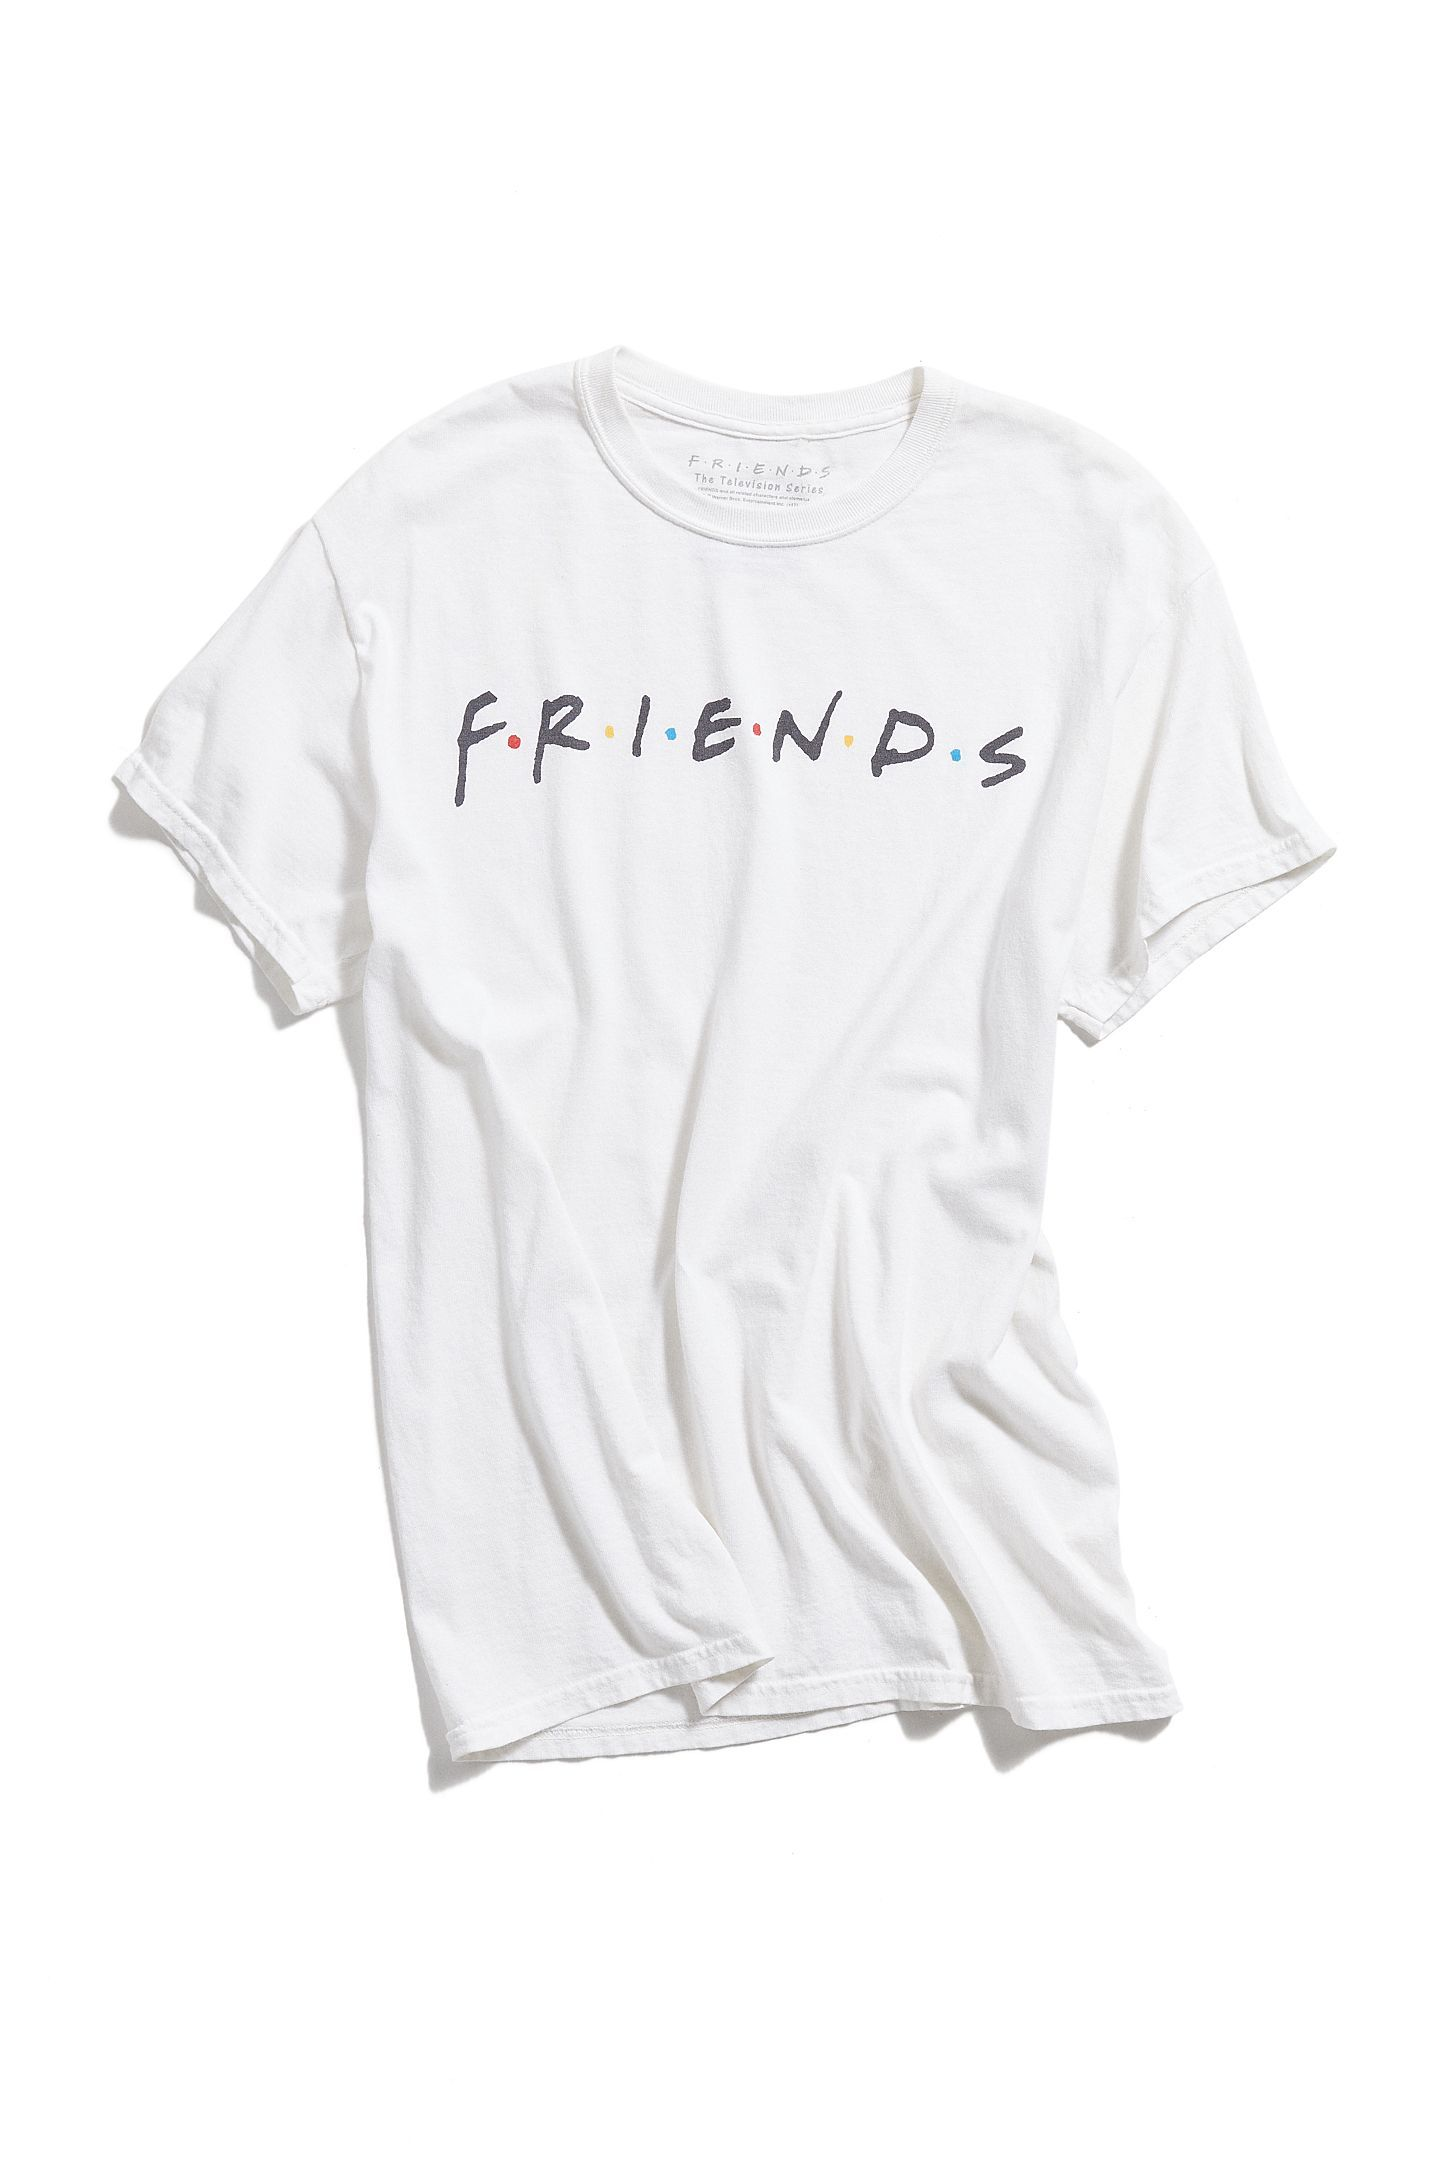 Friends Logo Tee Friend logo, Black, white tees, Black